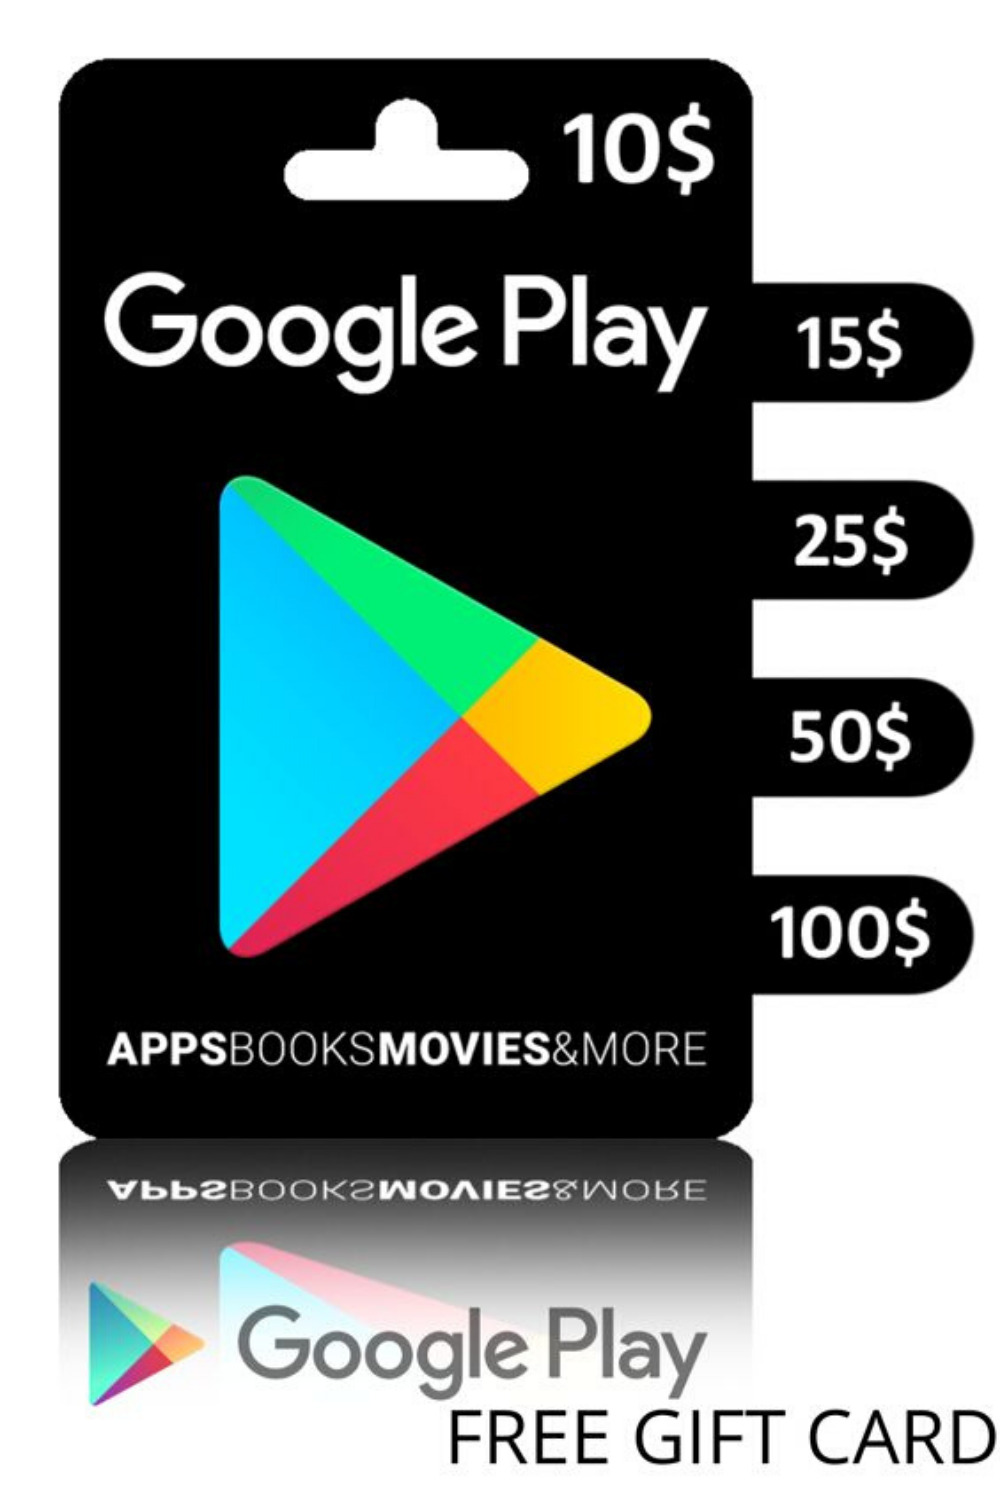 Google Play Free Gift Card 2020 How To Earn Google Play Free Gift Card Google Play Redeem Code In 2020 Google Play Gift Card Amazon Gift Card Free Paypal Gift Card